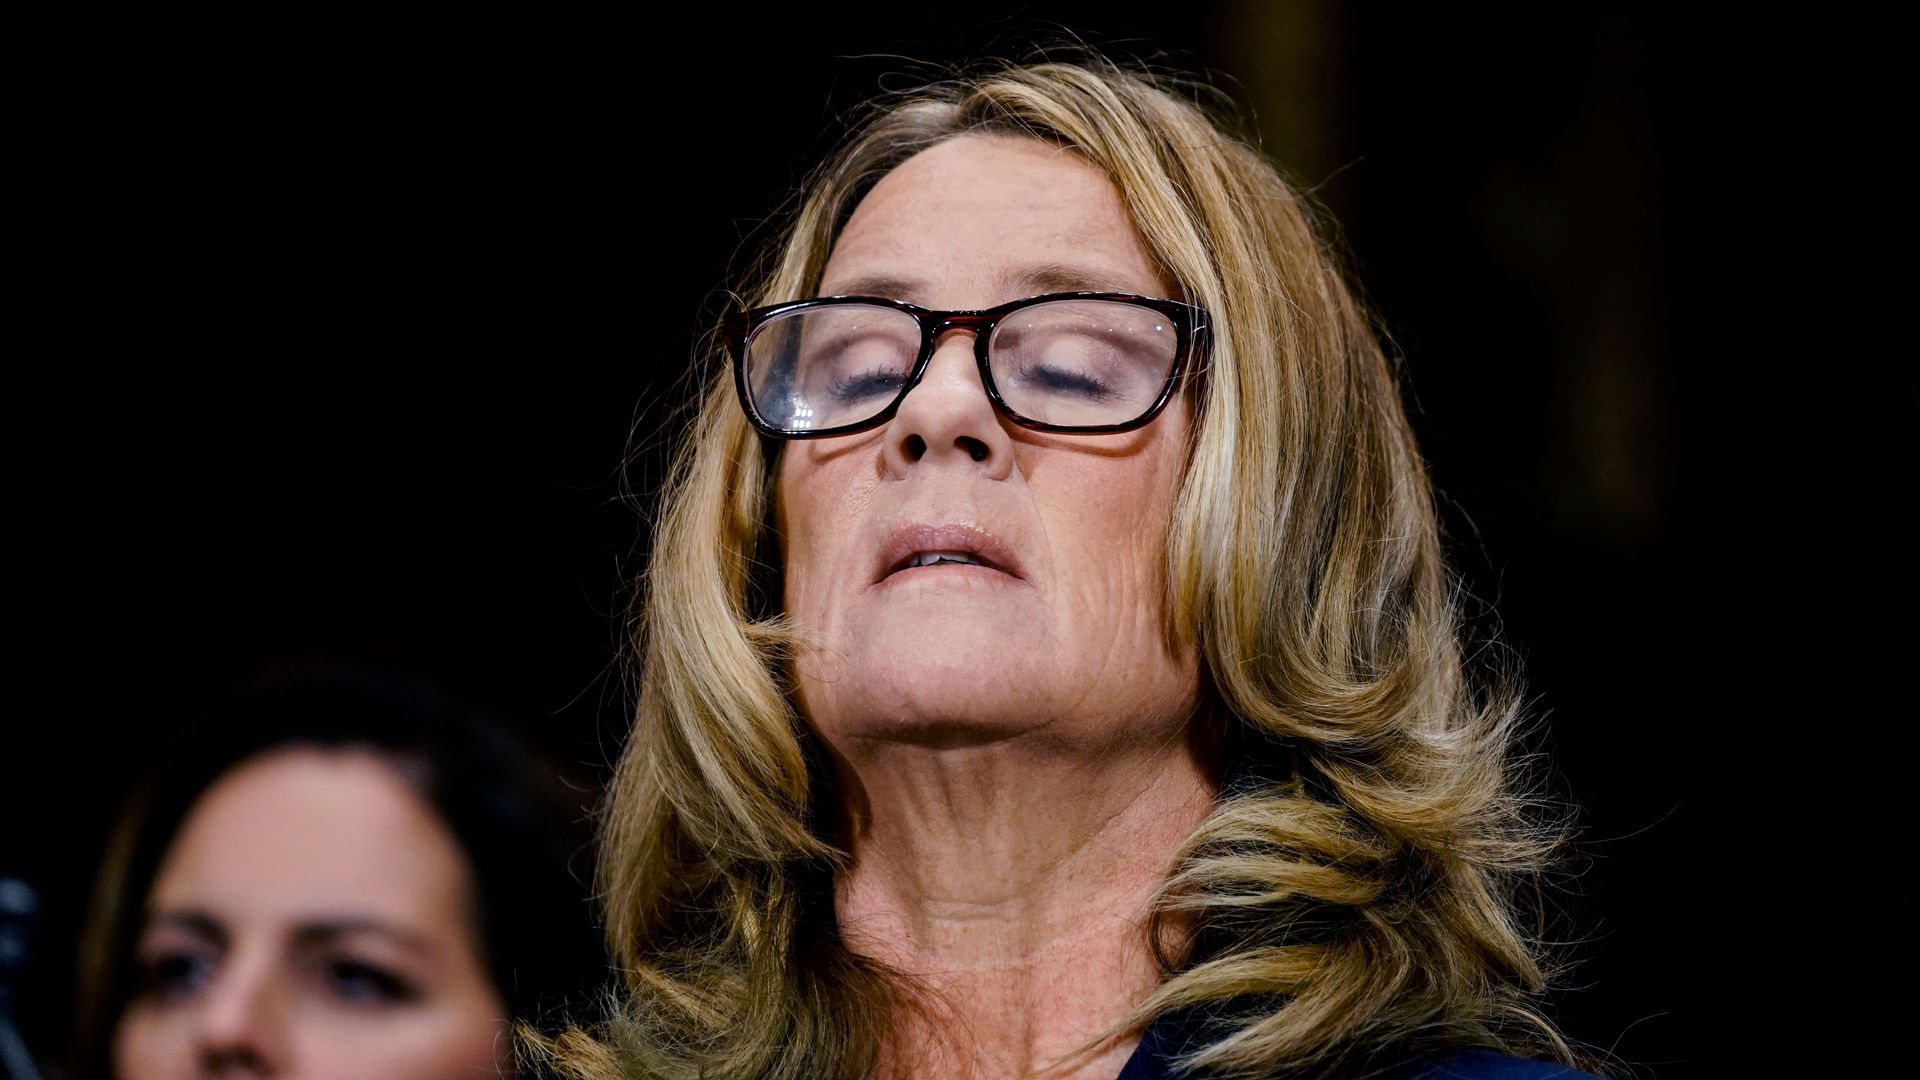 Dr. Christine Blasey Ford closes eyes and lifts head to sky.